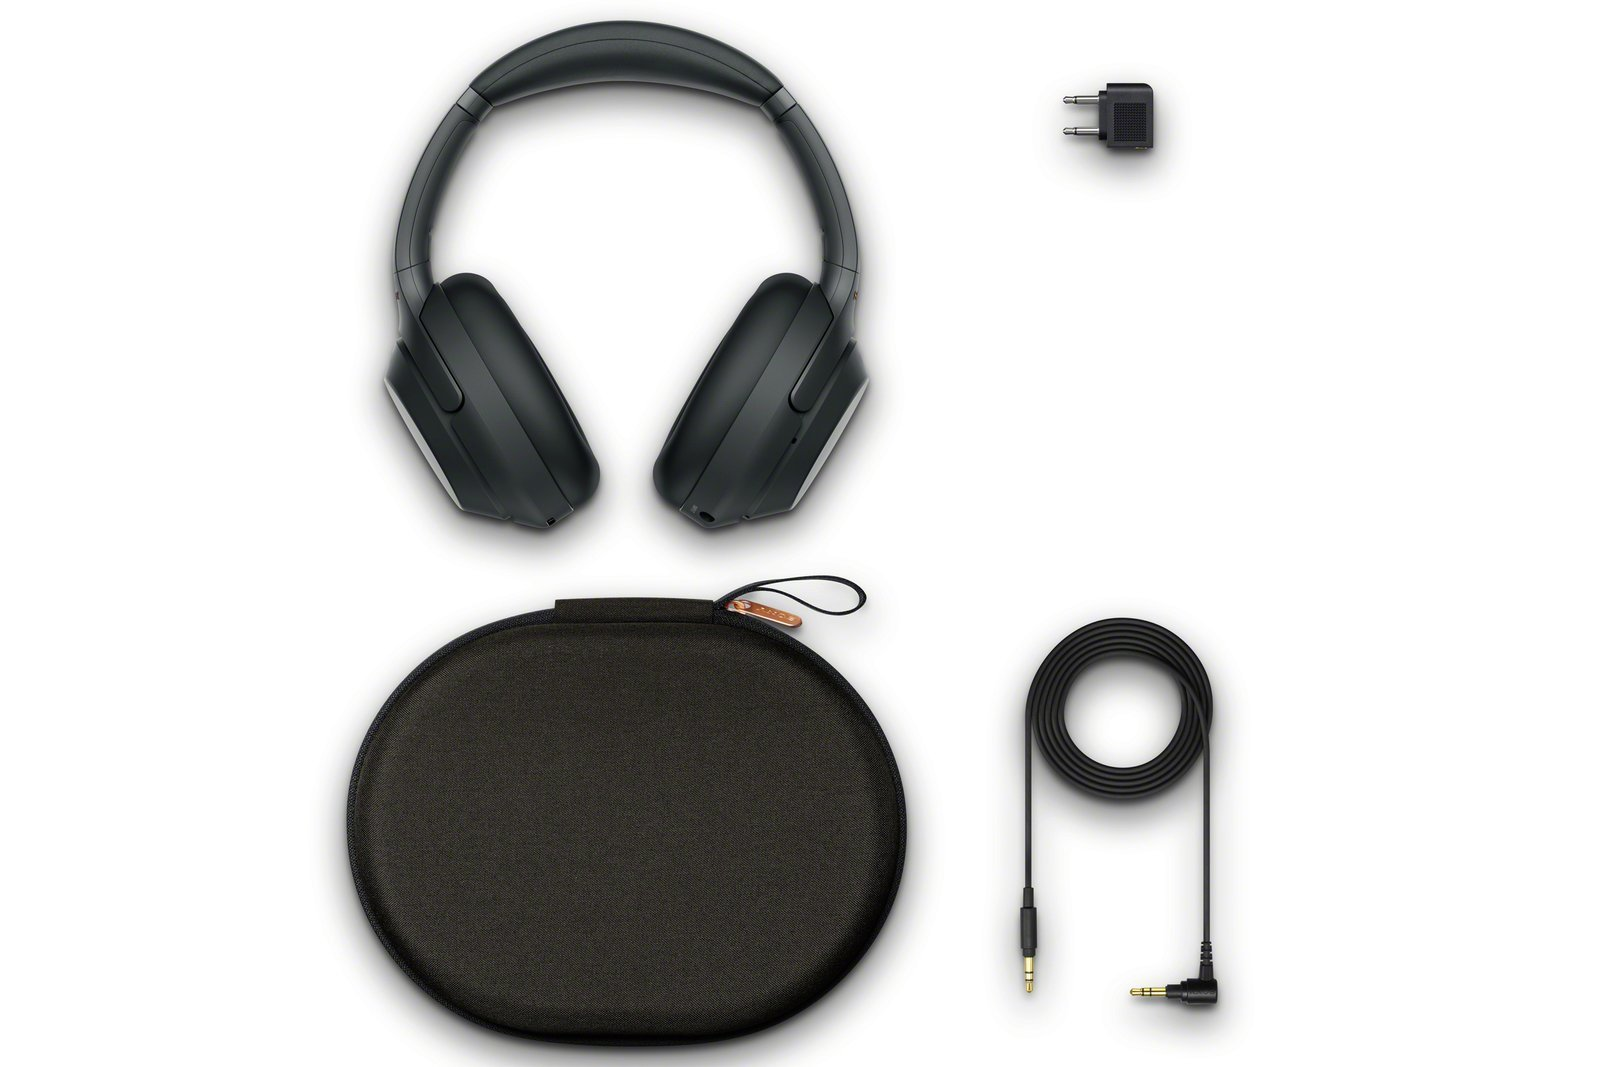 Sony WH-1000XM3 Wireless Noise Cancelling Over-the-Ear Headphones Black